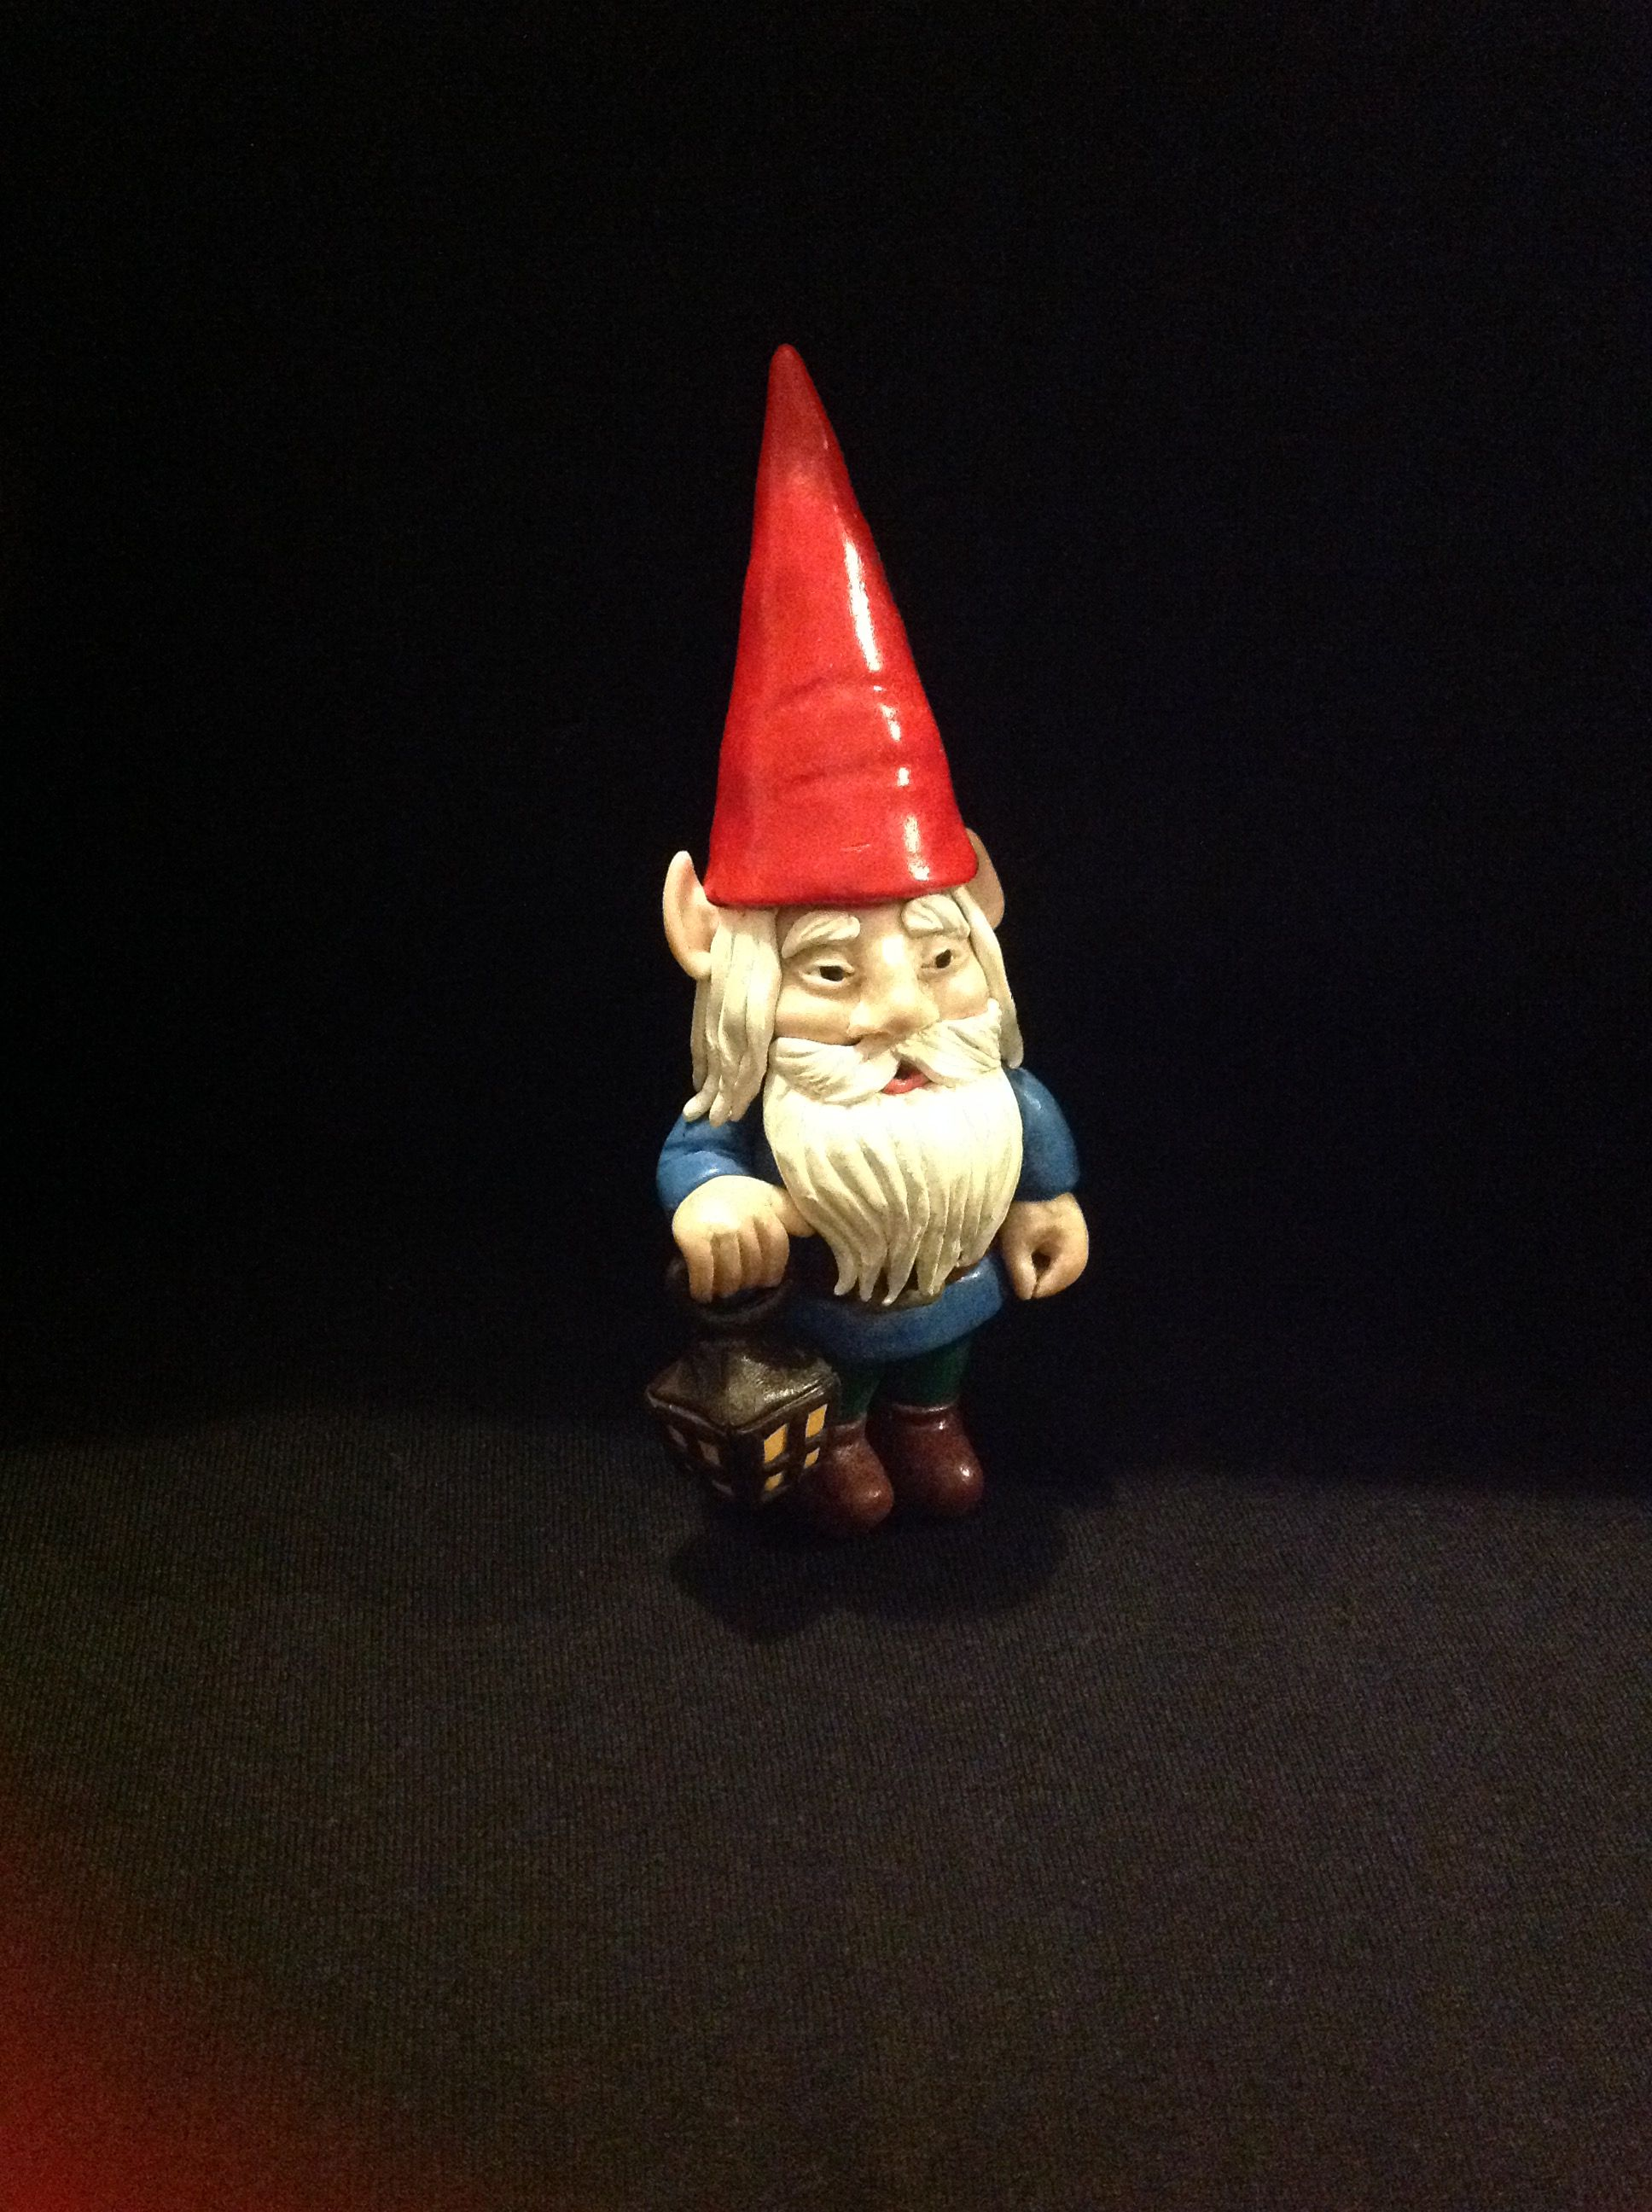 Polymer clay garden gnome. I don't have a garden so I made him pot plant size